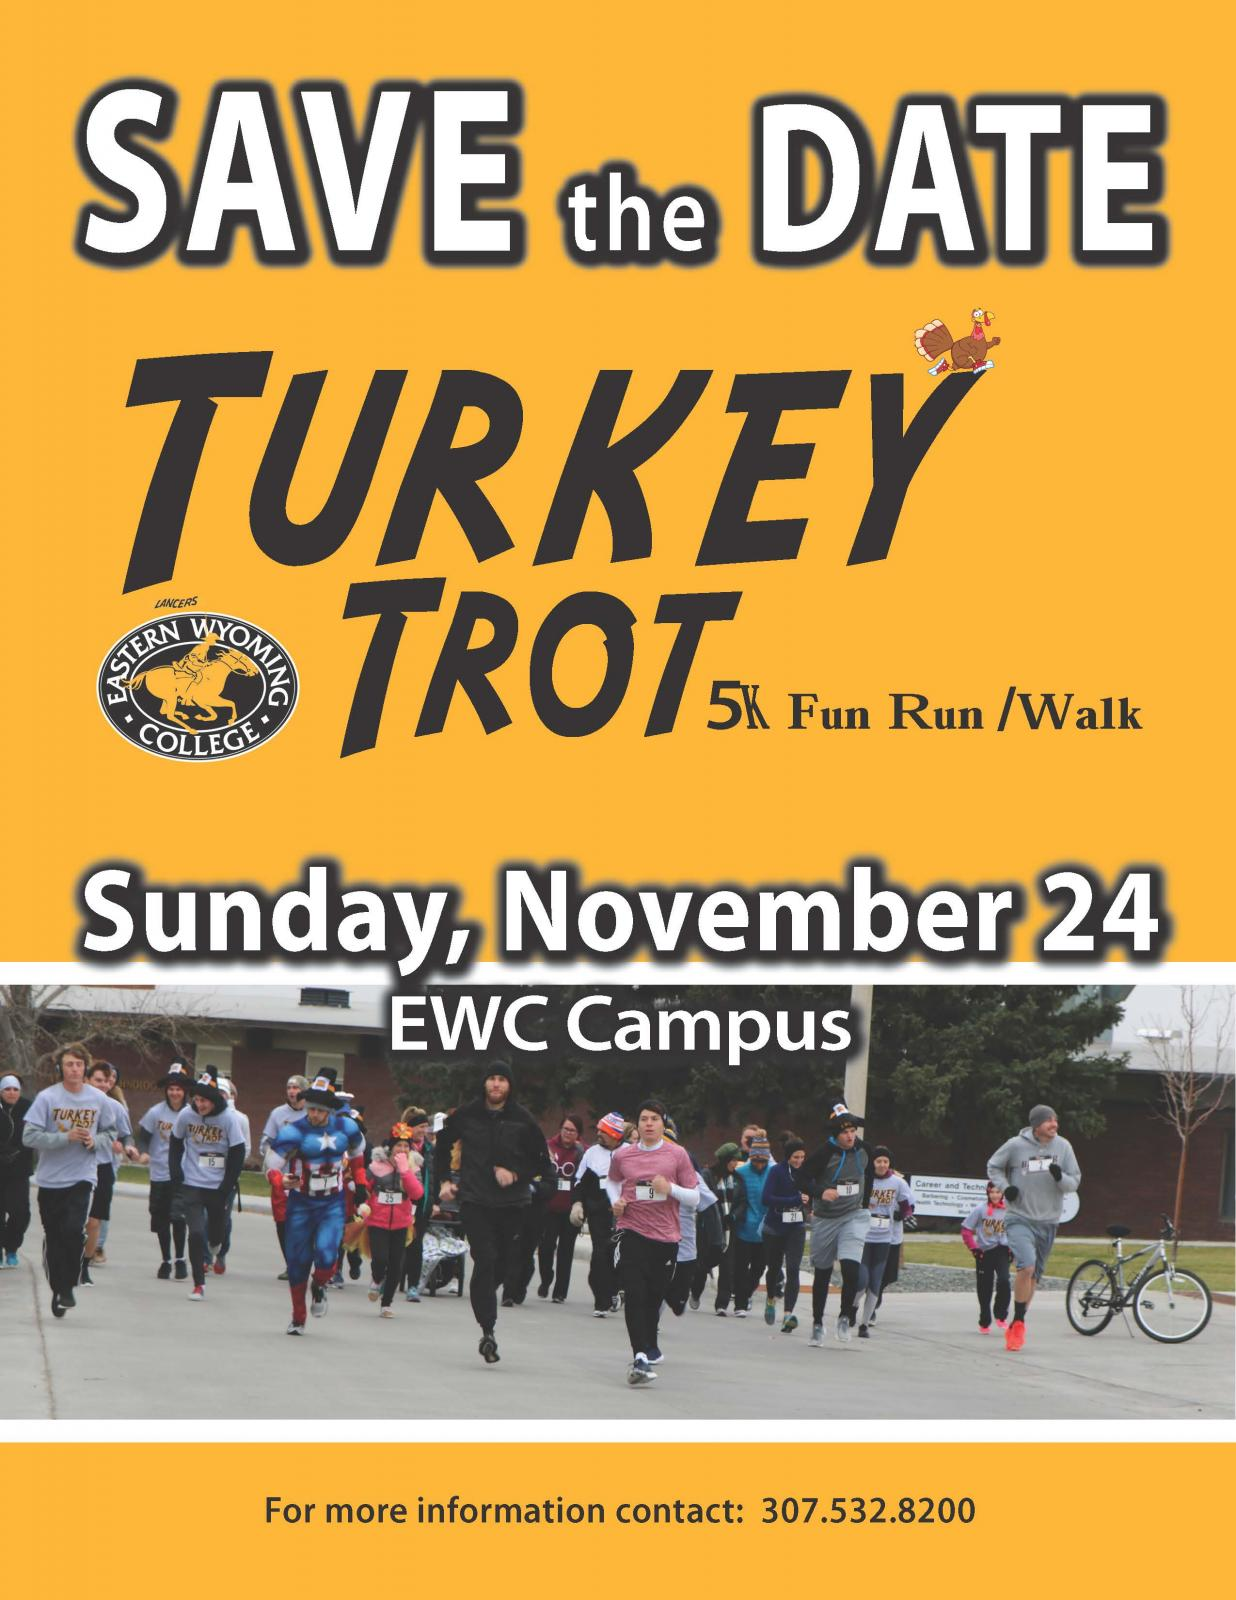 Event Promo Photo For EWC Turkey Trot 5k